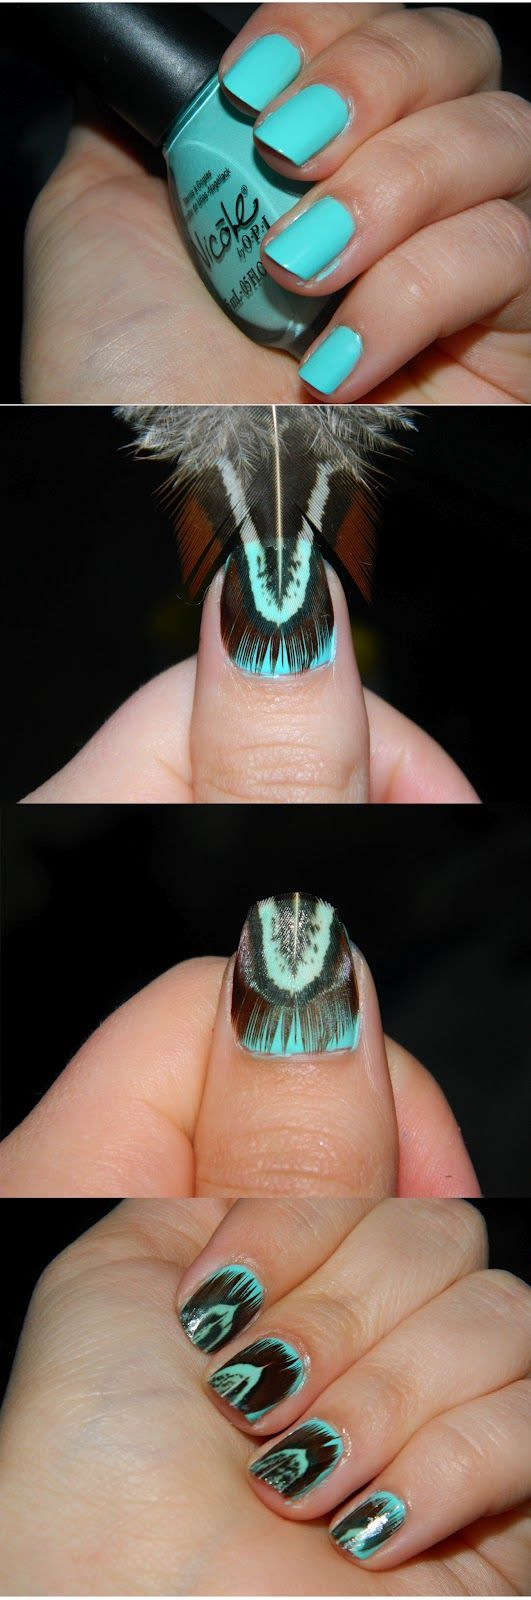 Feather Manicure.: Nails Art, Nails Design, Nailart, Teal Color, Feathers Manicures, Peacocks Nails, Peacocks Feathers, Feathers Nails, Nails Tutorials